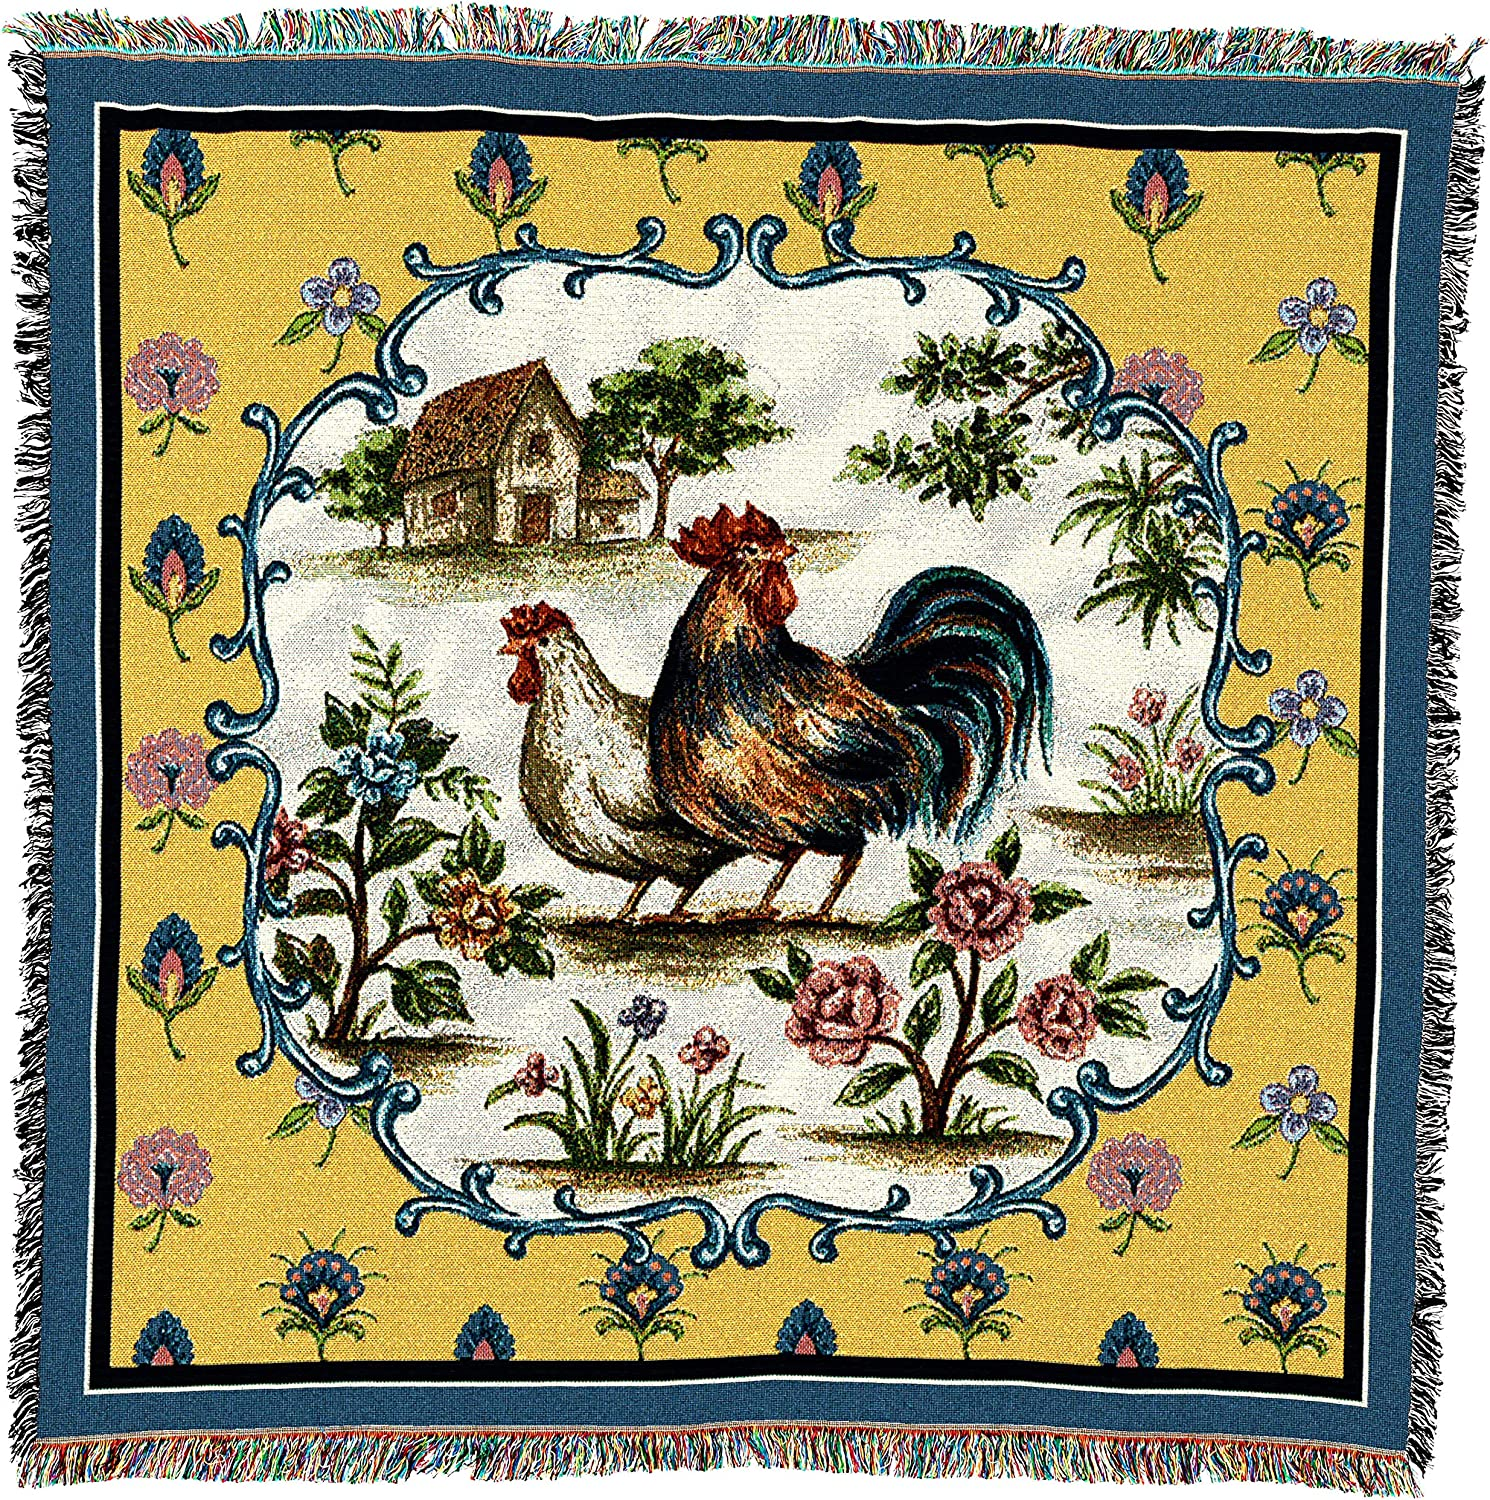 Pure Country Weavers   Country Roosters Woven Throw Blanket Cotton with Fringe Cotton USA 54x54